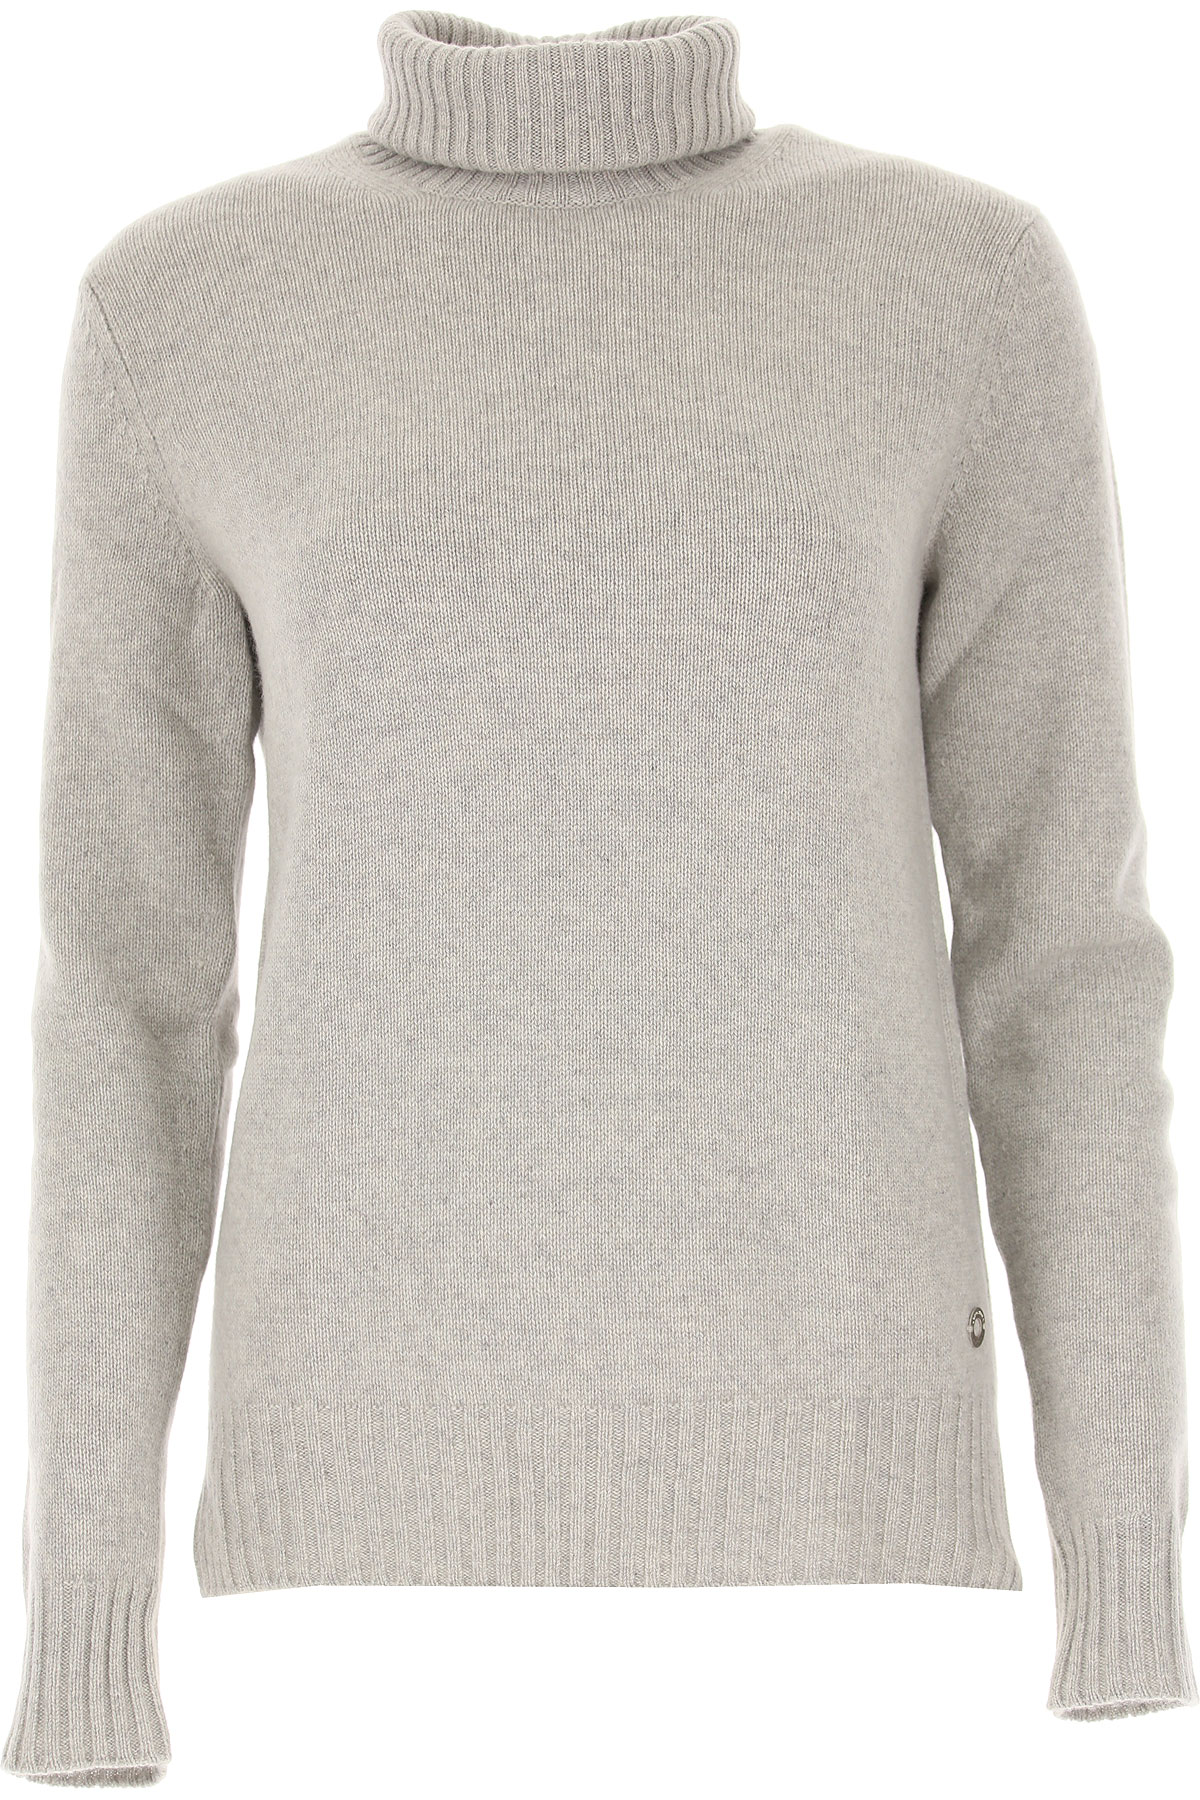 Image of Loro Piana Sweater for Women Jumper, Grey, Cashmere, 2017, 4 6 8